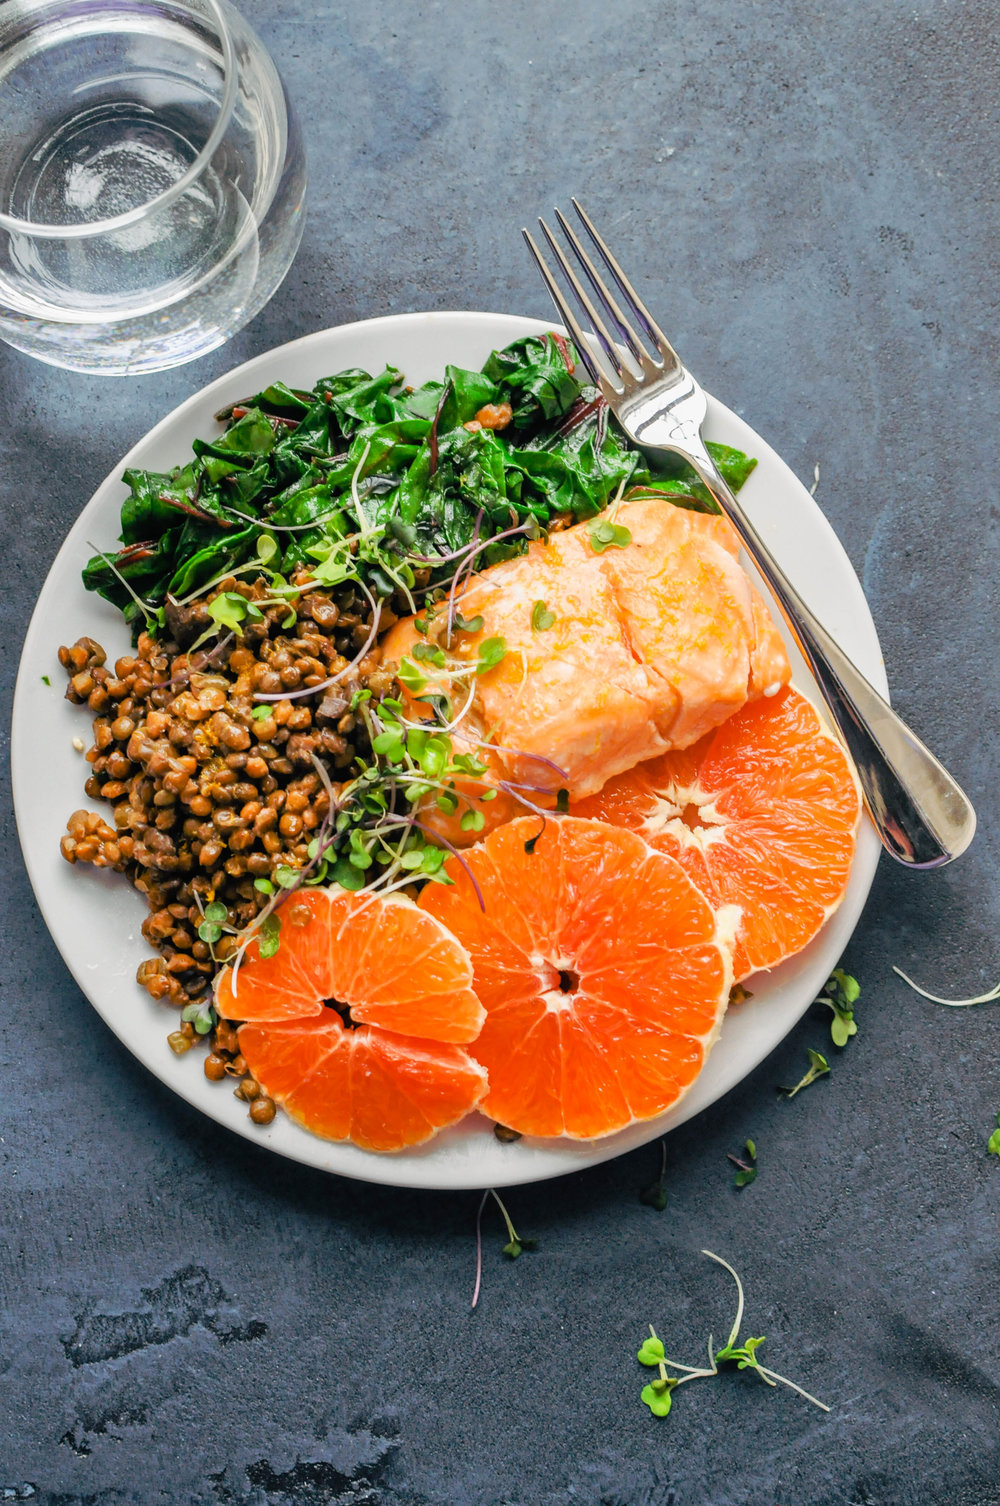 Cara Cara Orange Salmon with Lentils from This Healthy Table. Get the recipe here. - Zesty and fresh, this salmon and orange dish is a great weeknight meal.